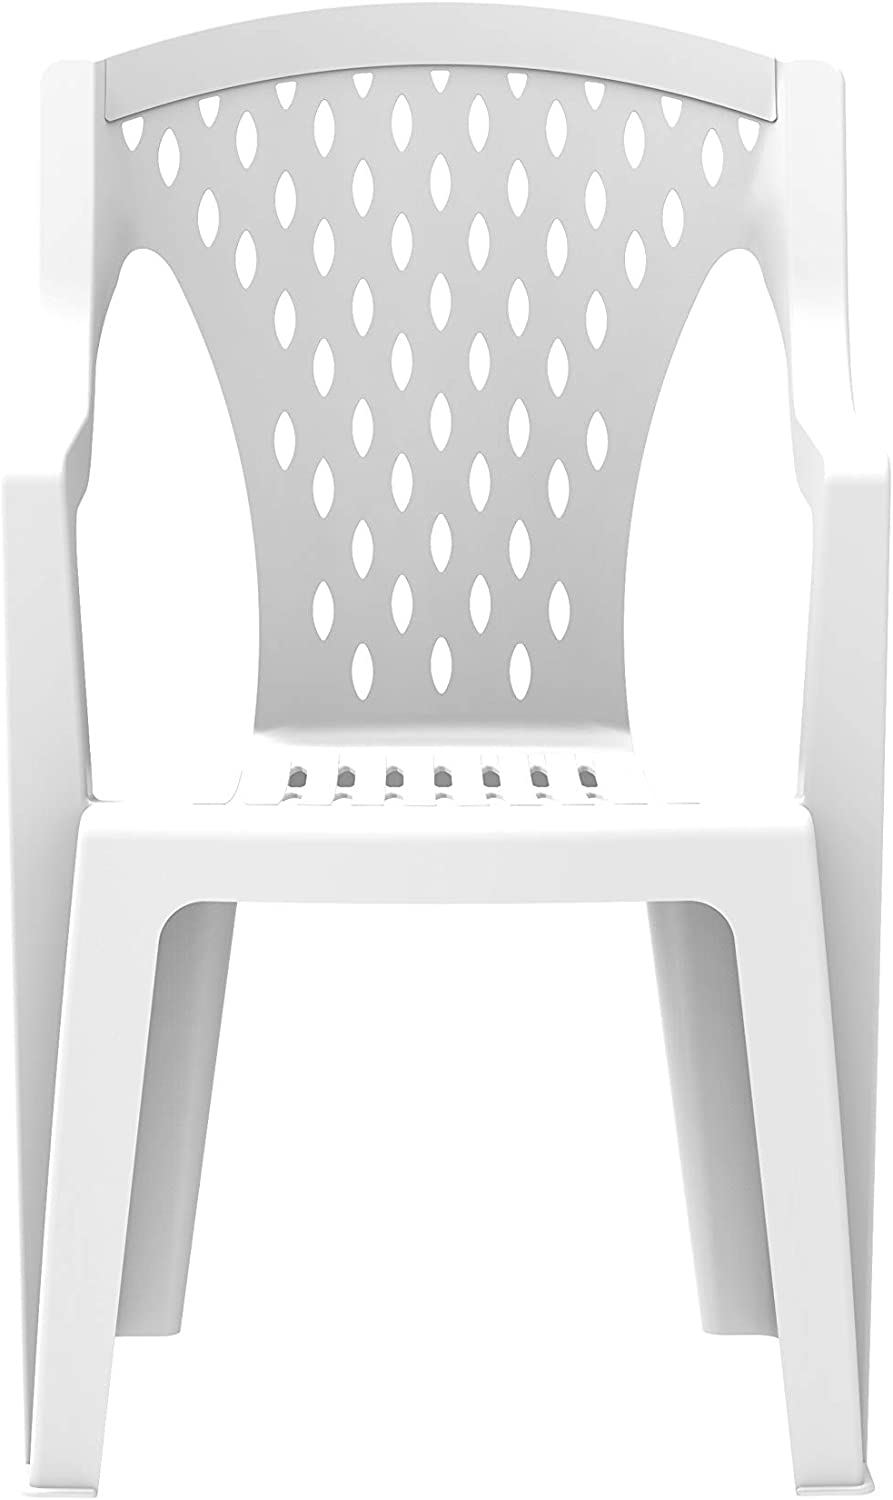 59 x 58 x 93 cm Duramax Queen High Back Plastic Armrest White Dining Patio Garden Indoor /& Outdoor Chairs Home /& Party Sturdy /& Durable Weatherproof /& Stackable